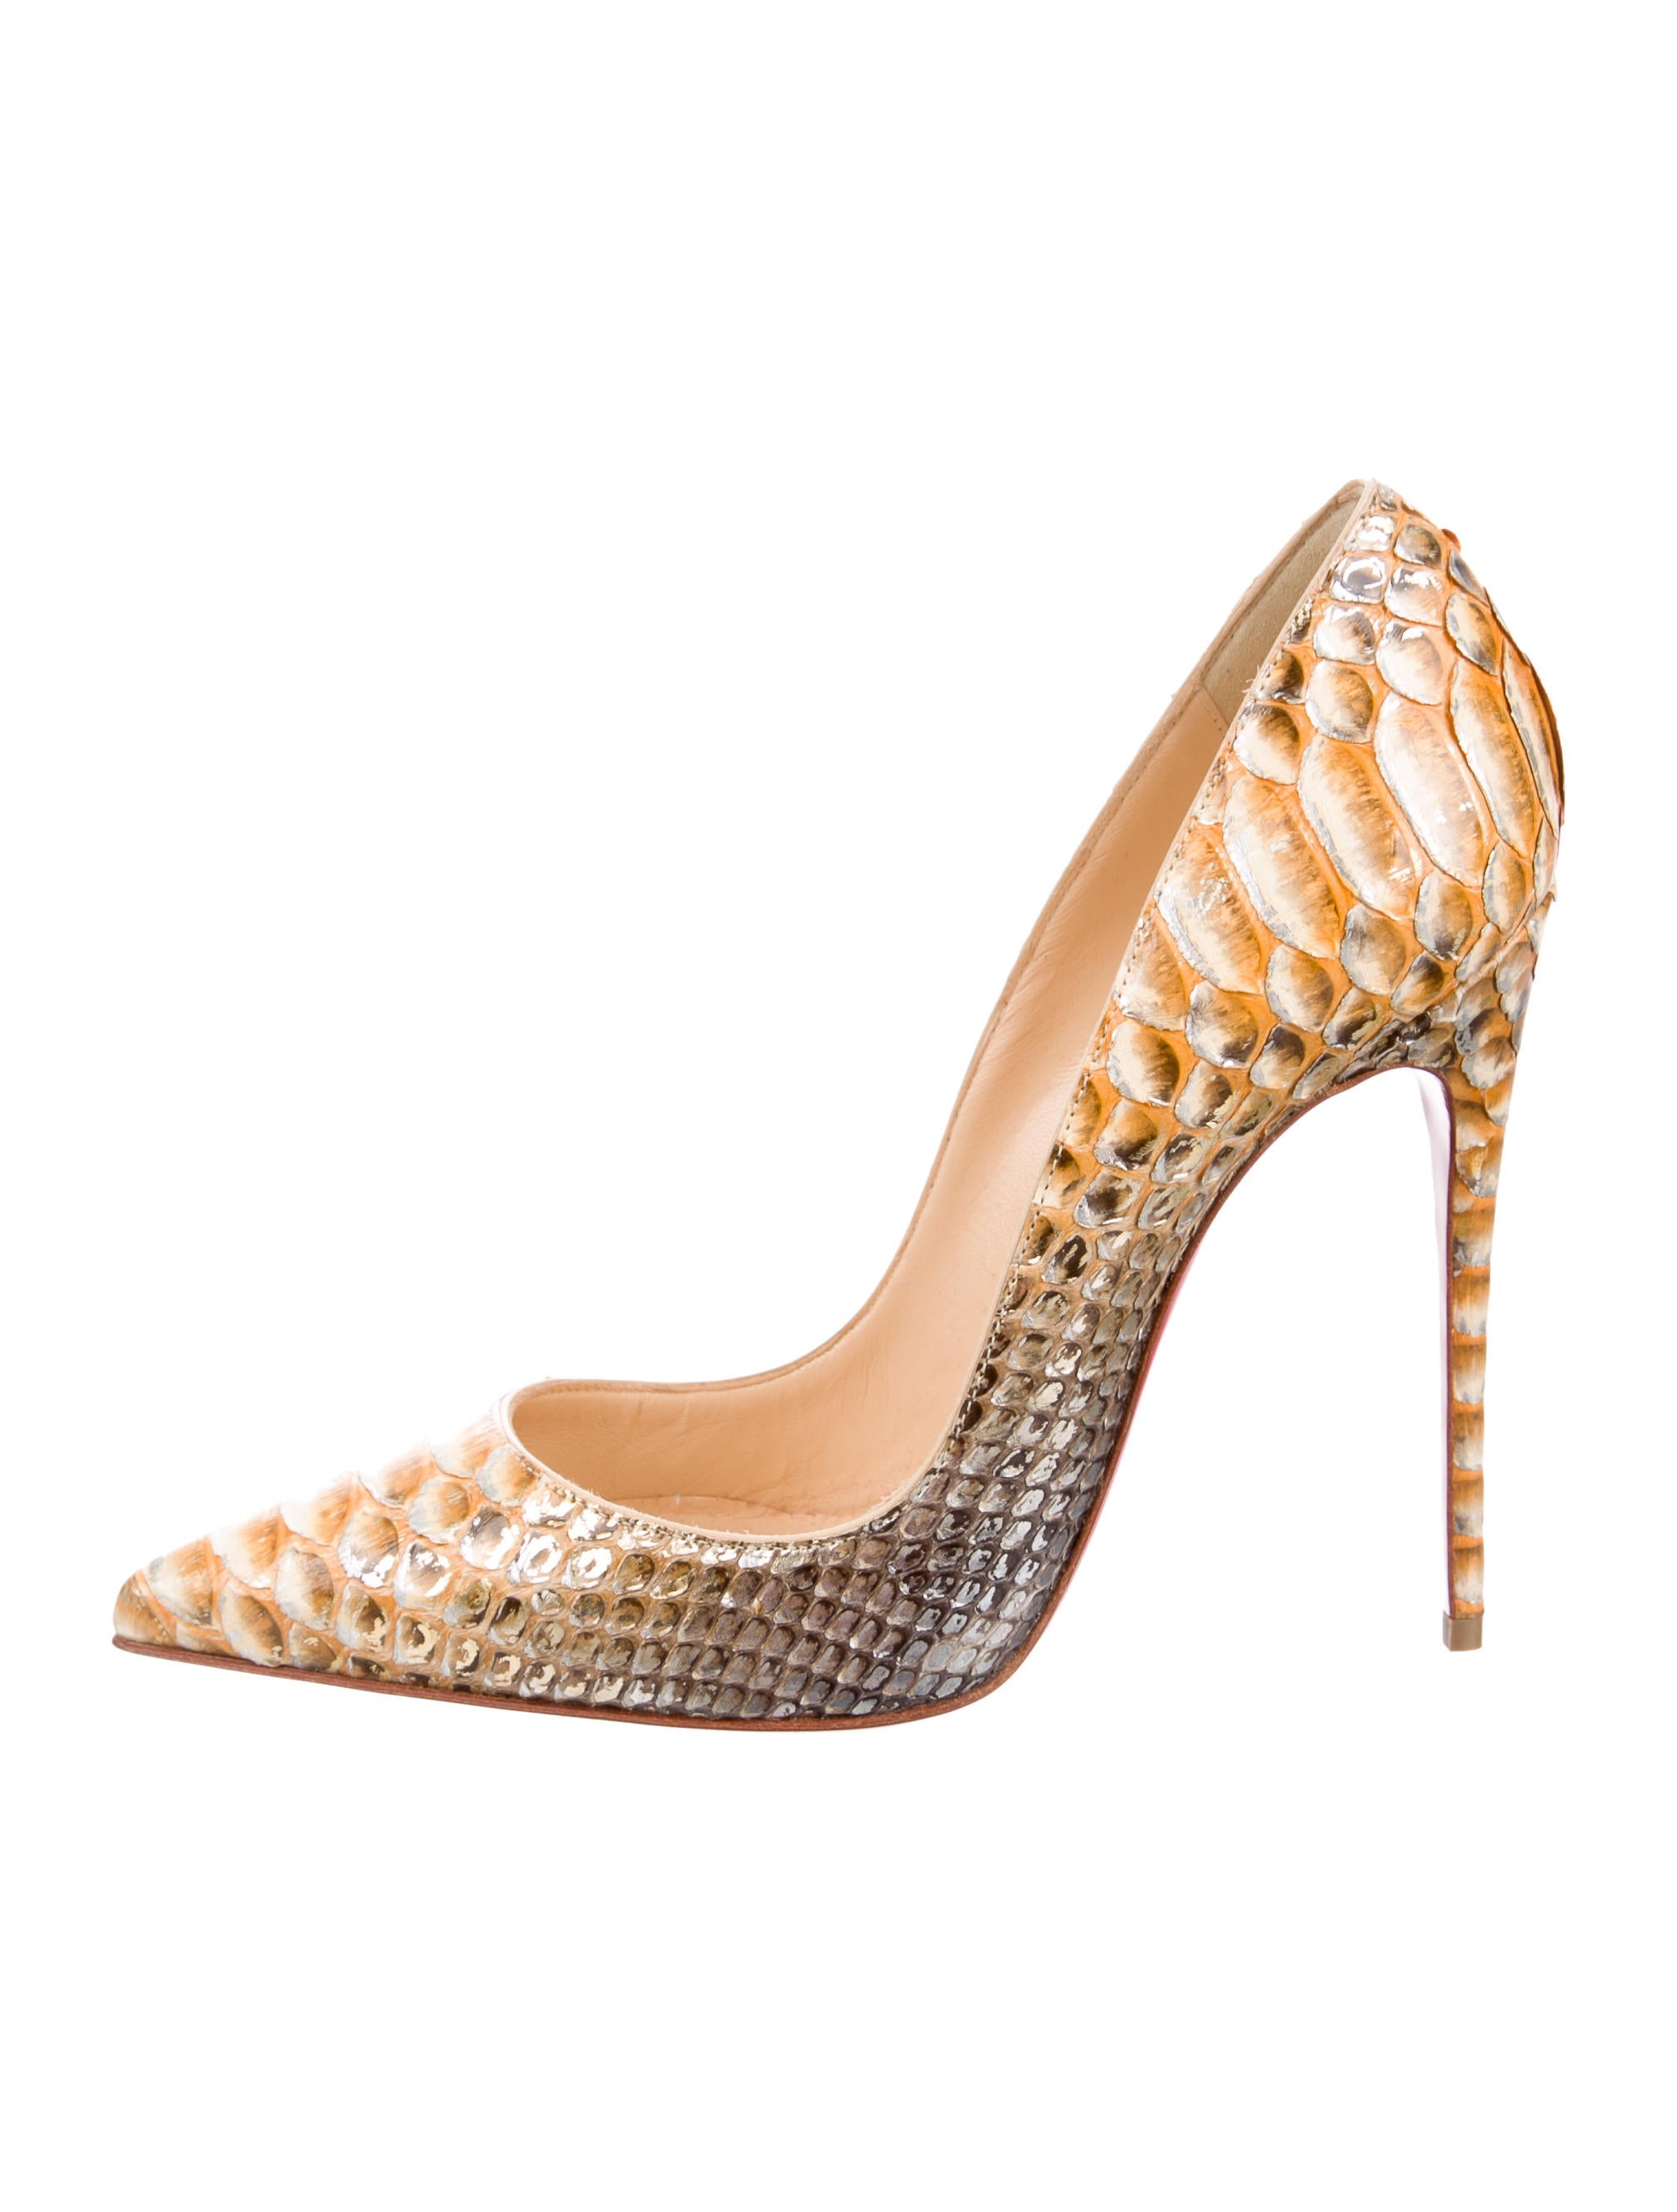 afbbcad256c0 Christian Louboutin So Kate 120 Python Pumps - Shoes - CHT64819 ...